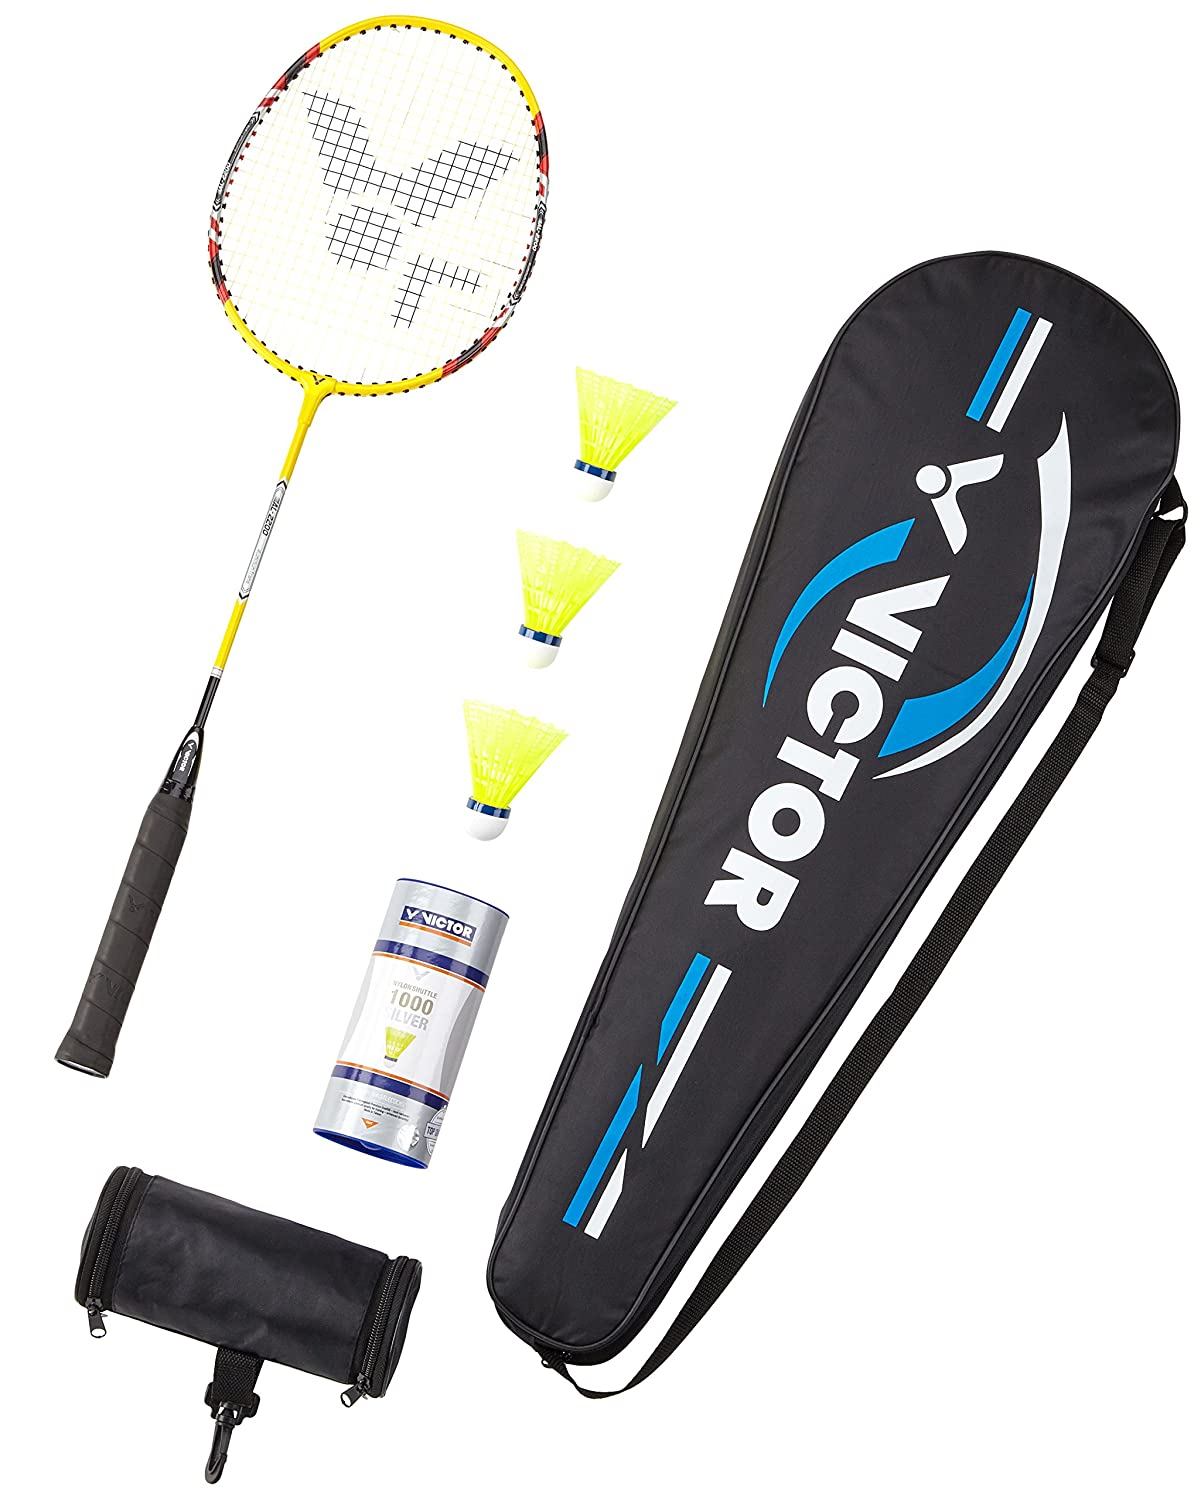 Victor AL 2200Badminton racket and shuttlecock in yellow single racket or as a set with racket/balls/carry bag 103/0/0